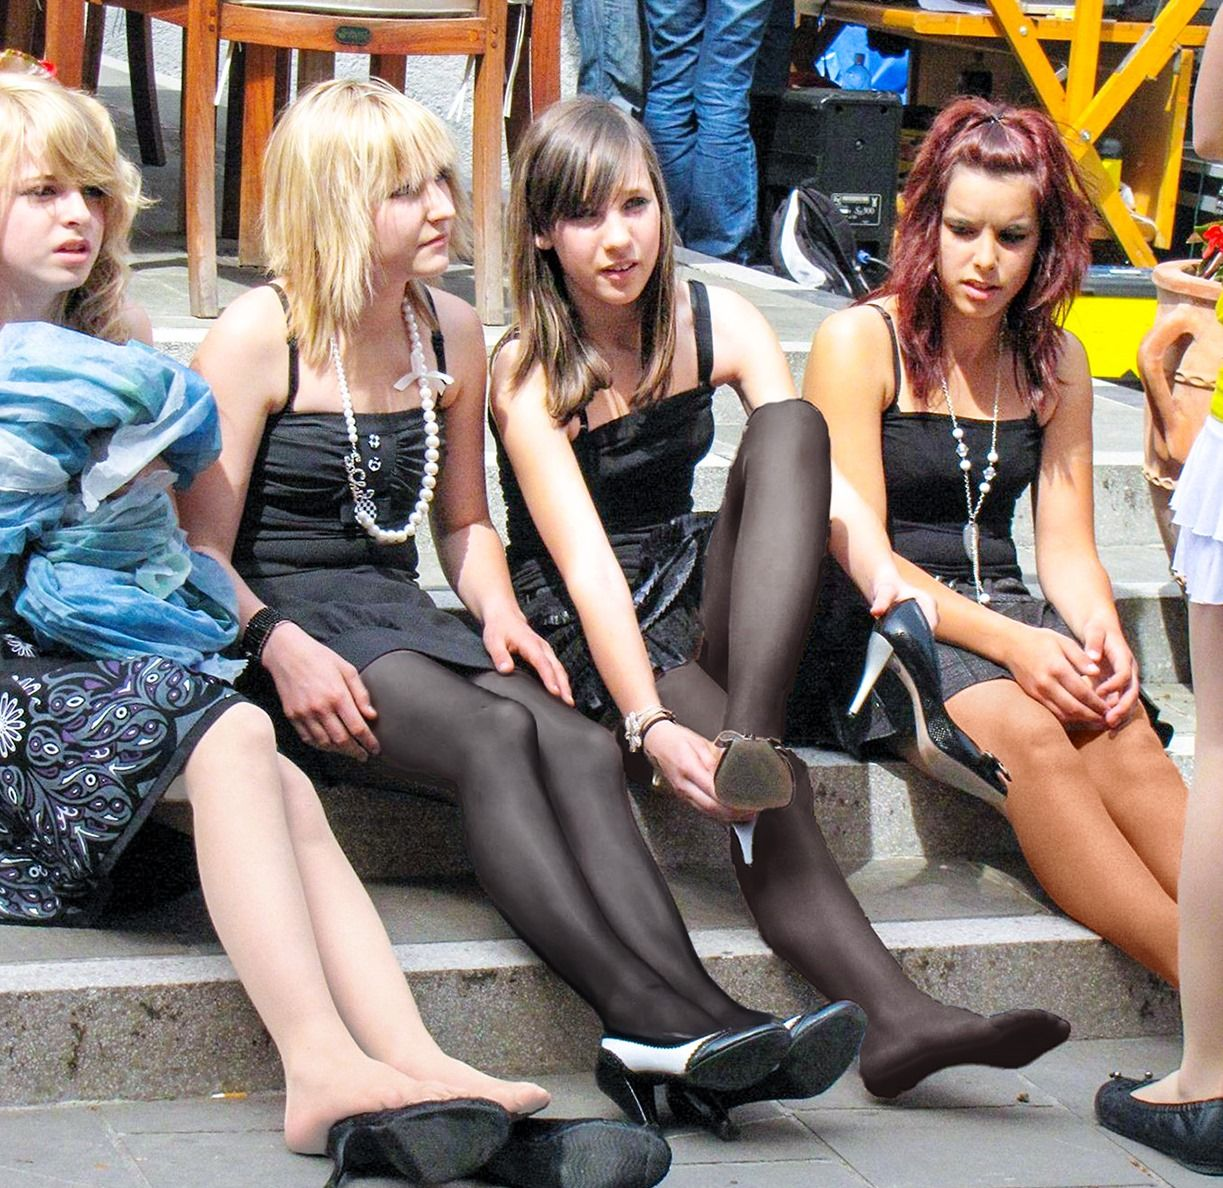 Pin on Groups in Pantyhose, Tights & Stockings & Tights